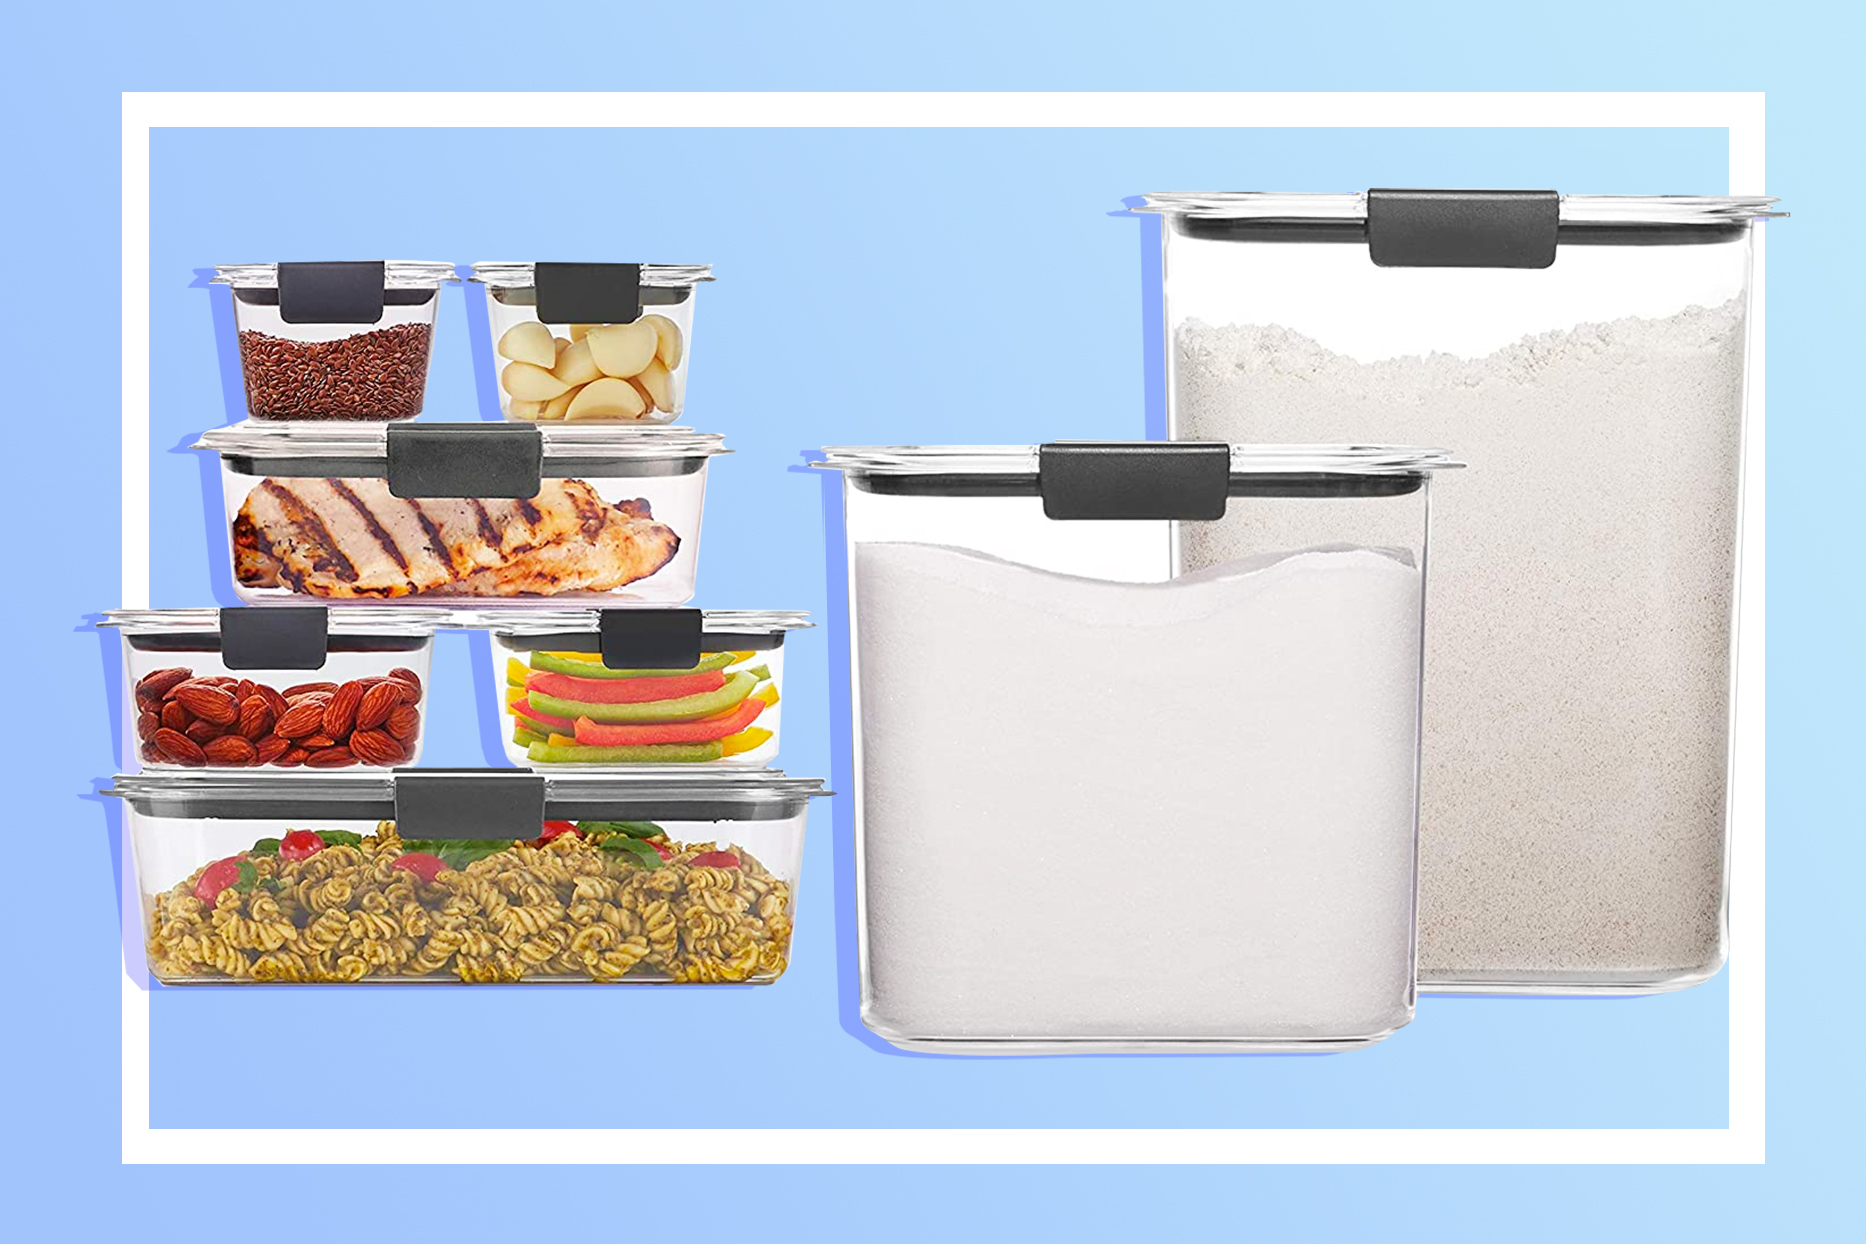 rubbermaid tupperware on blue background on sale for prime day